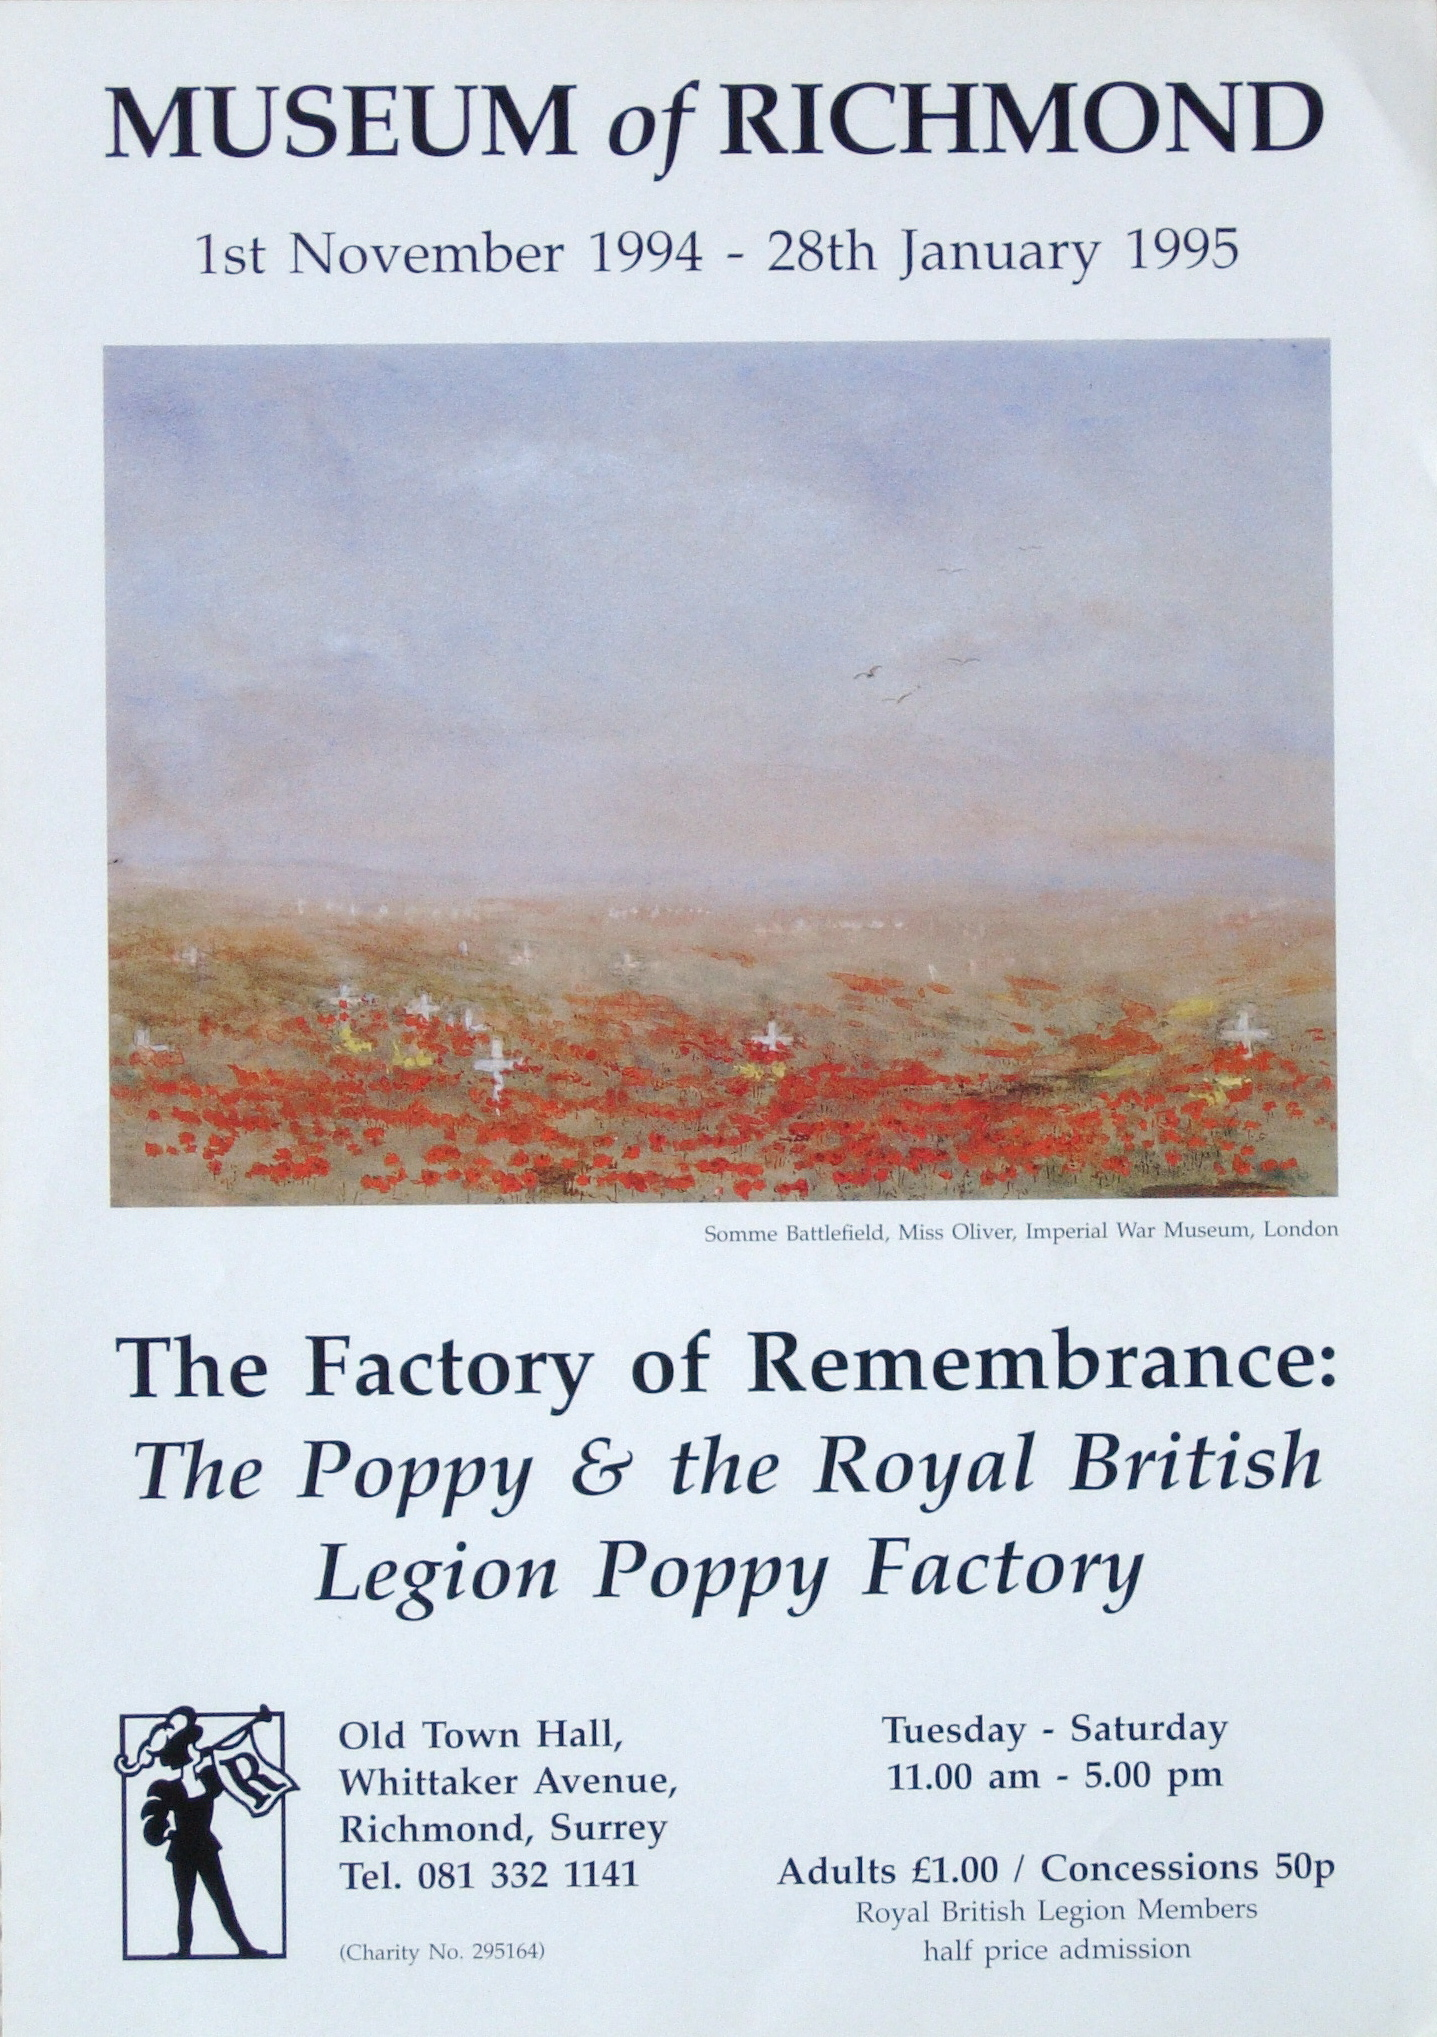 1994-95 The Factory of Remembrance